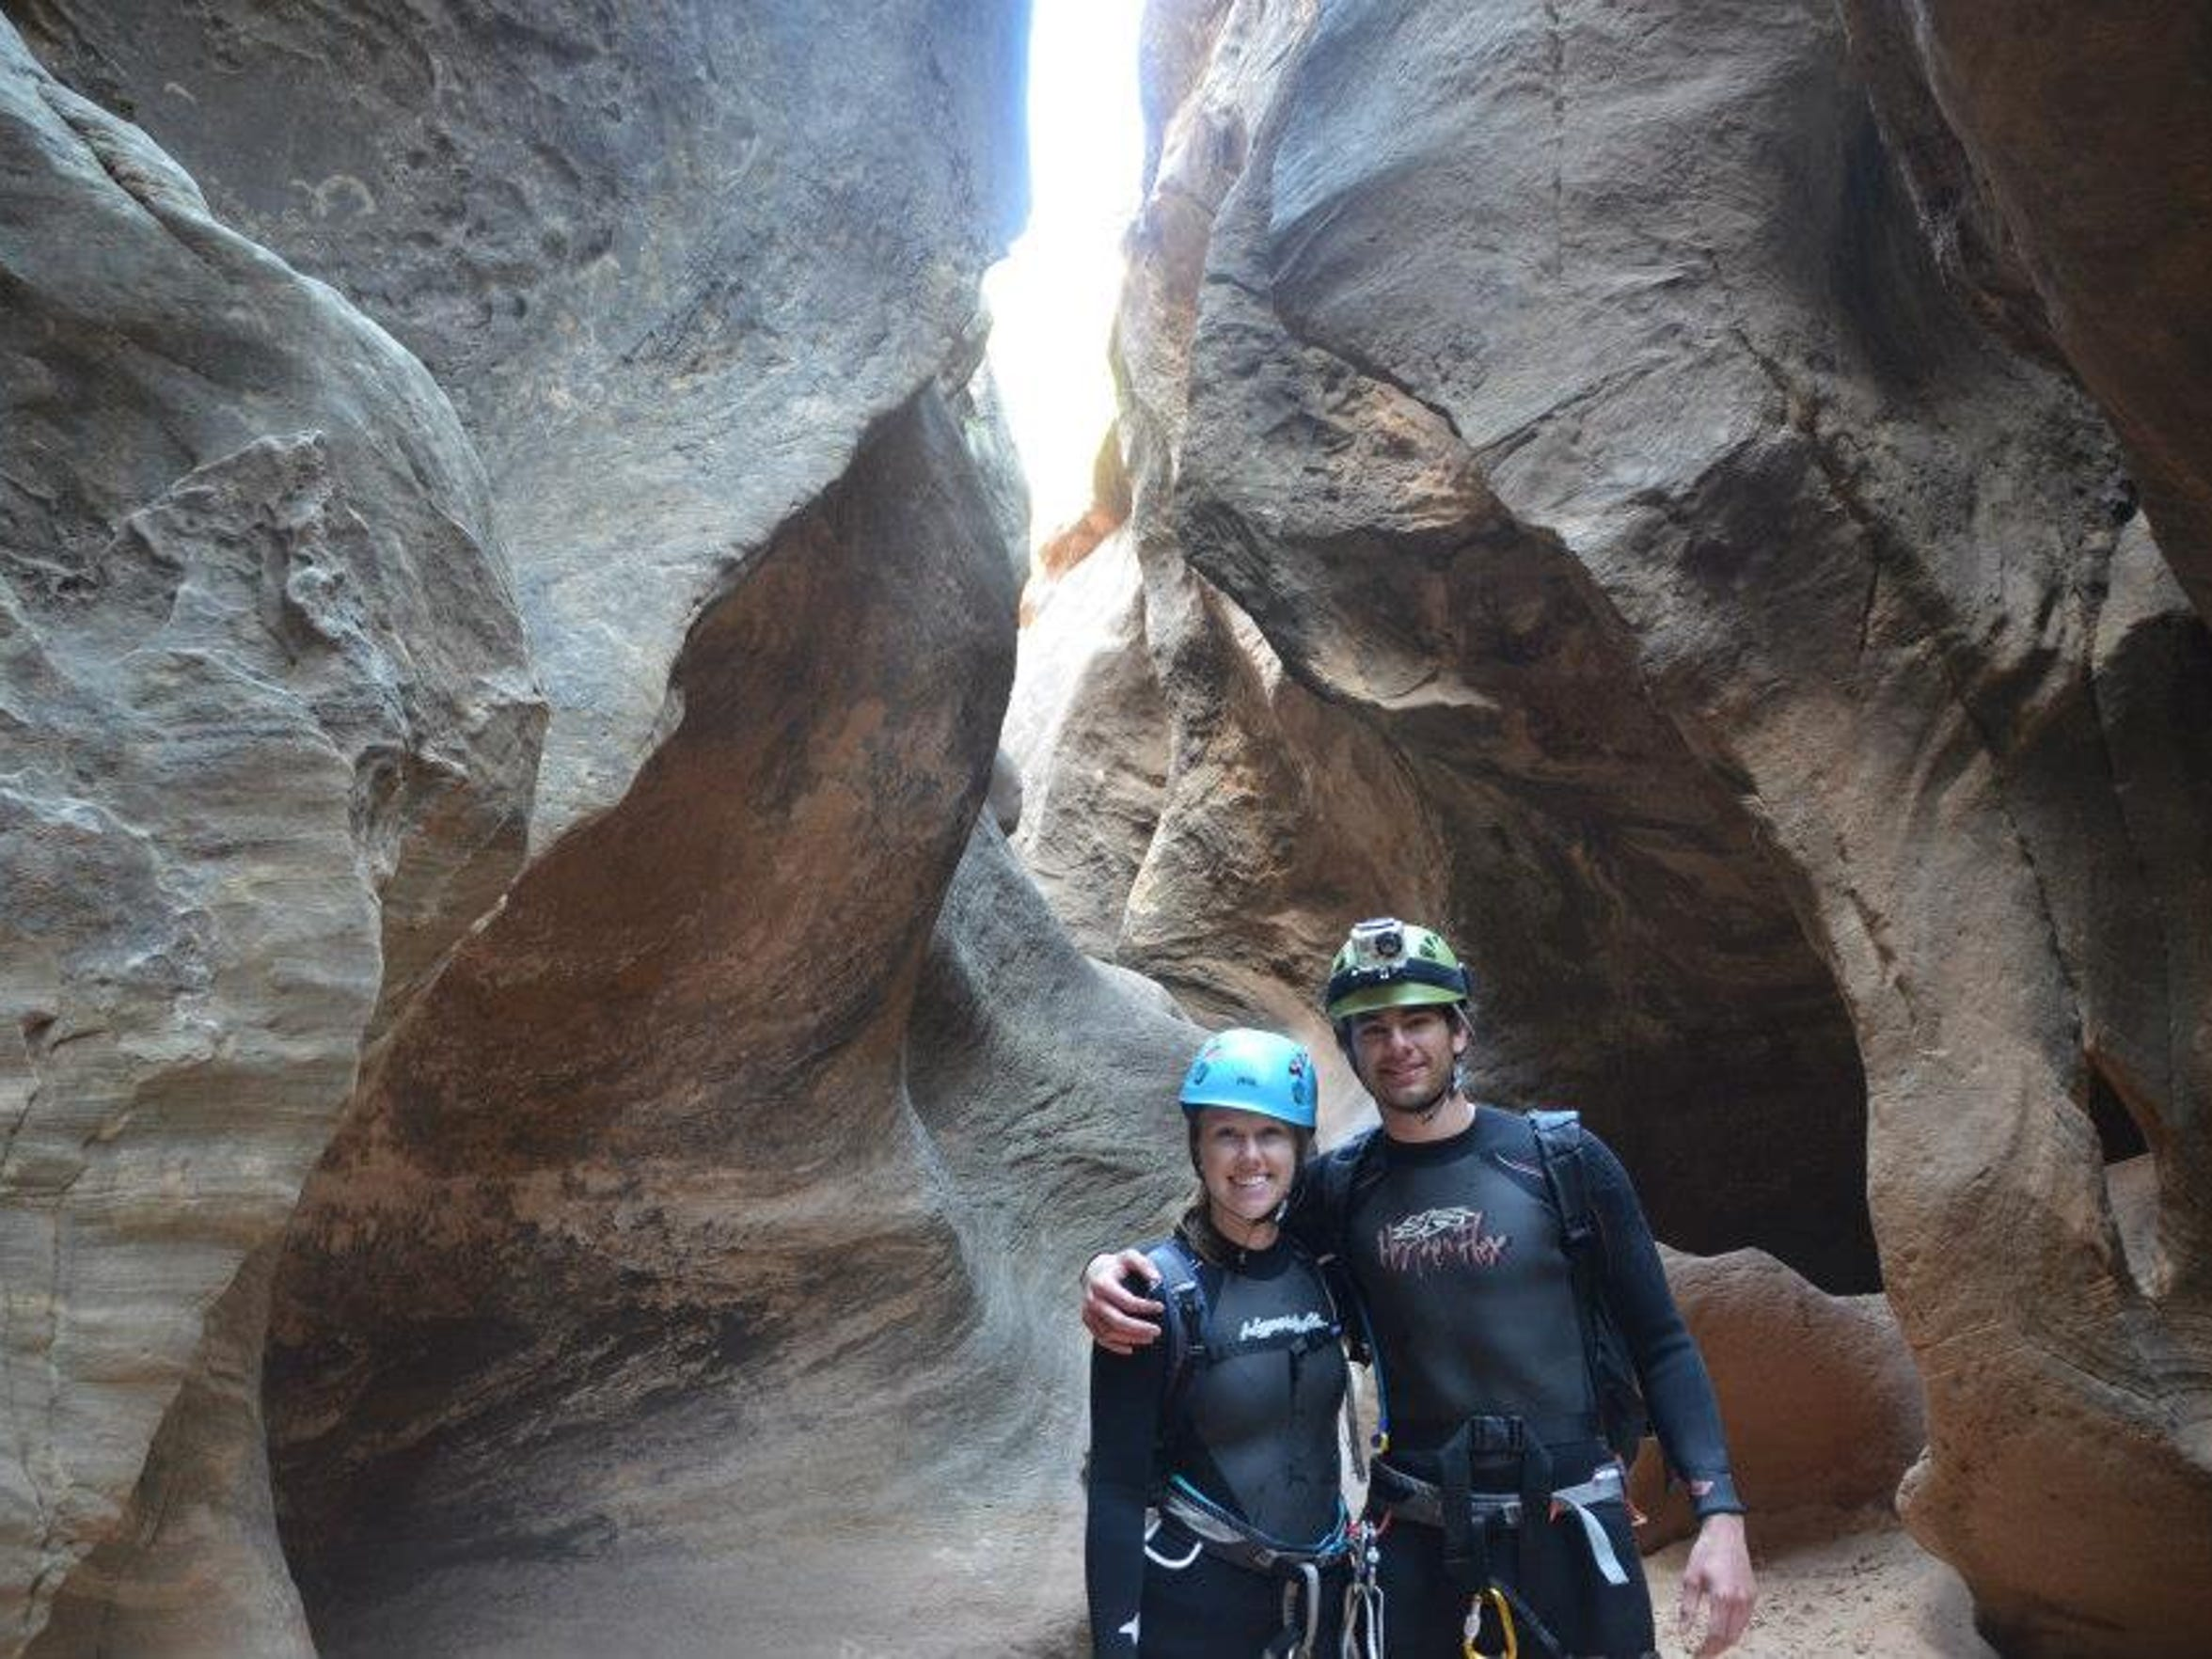 Fiances April Kirby and Brenden Cutter have climbed together for four years. Their climbing adventures have taken the across the world and to the top of several scenic peaks.